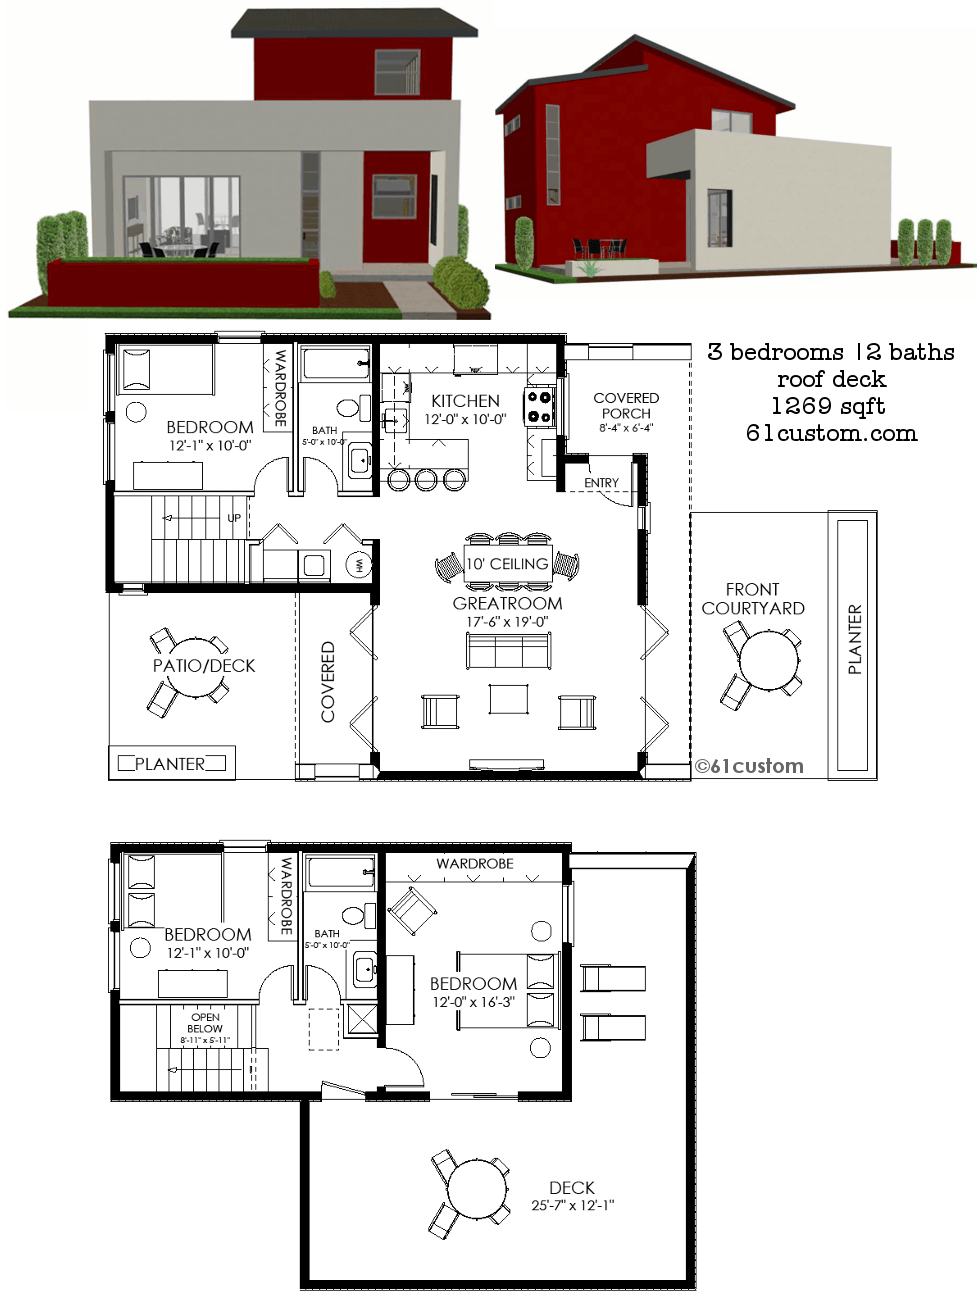 small modern house plan 1269 61custom - Custom Small Home Plans